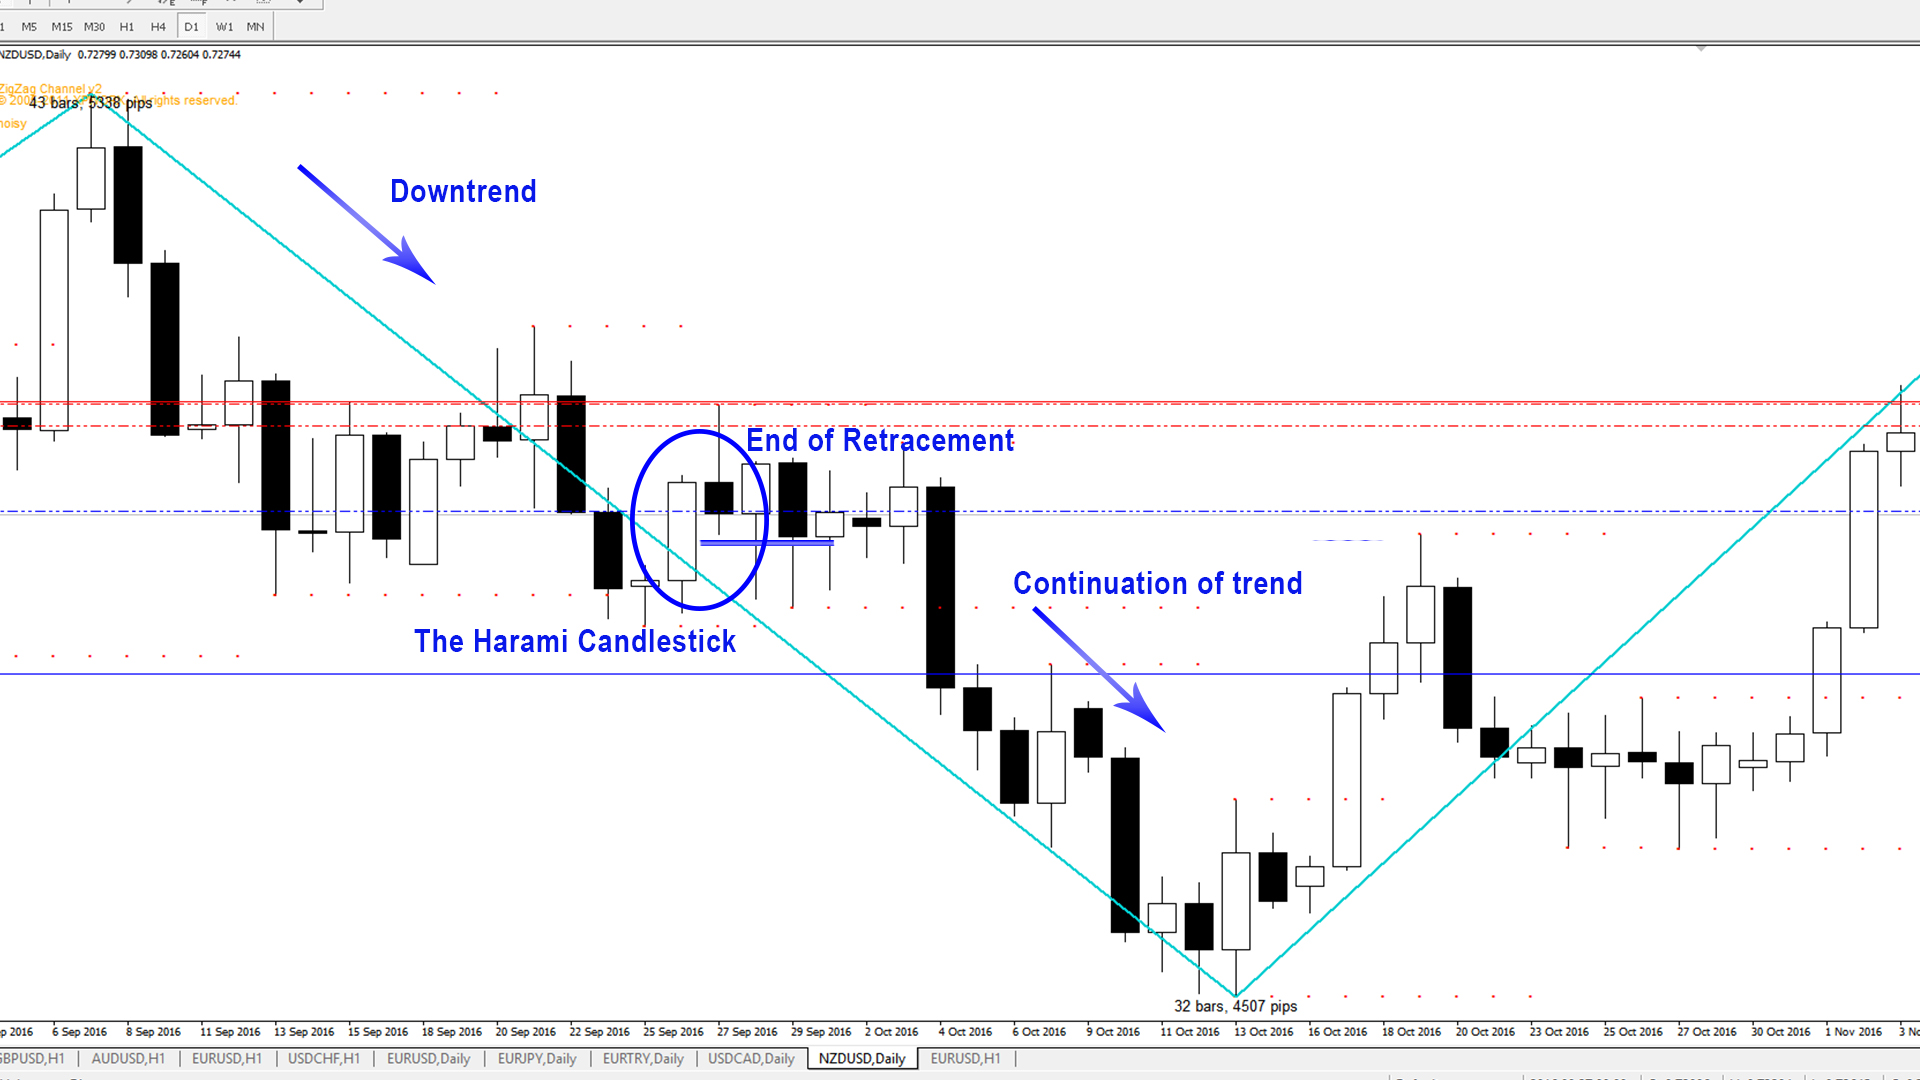 Candlestick Patterns - The Harami - Downtrend 1